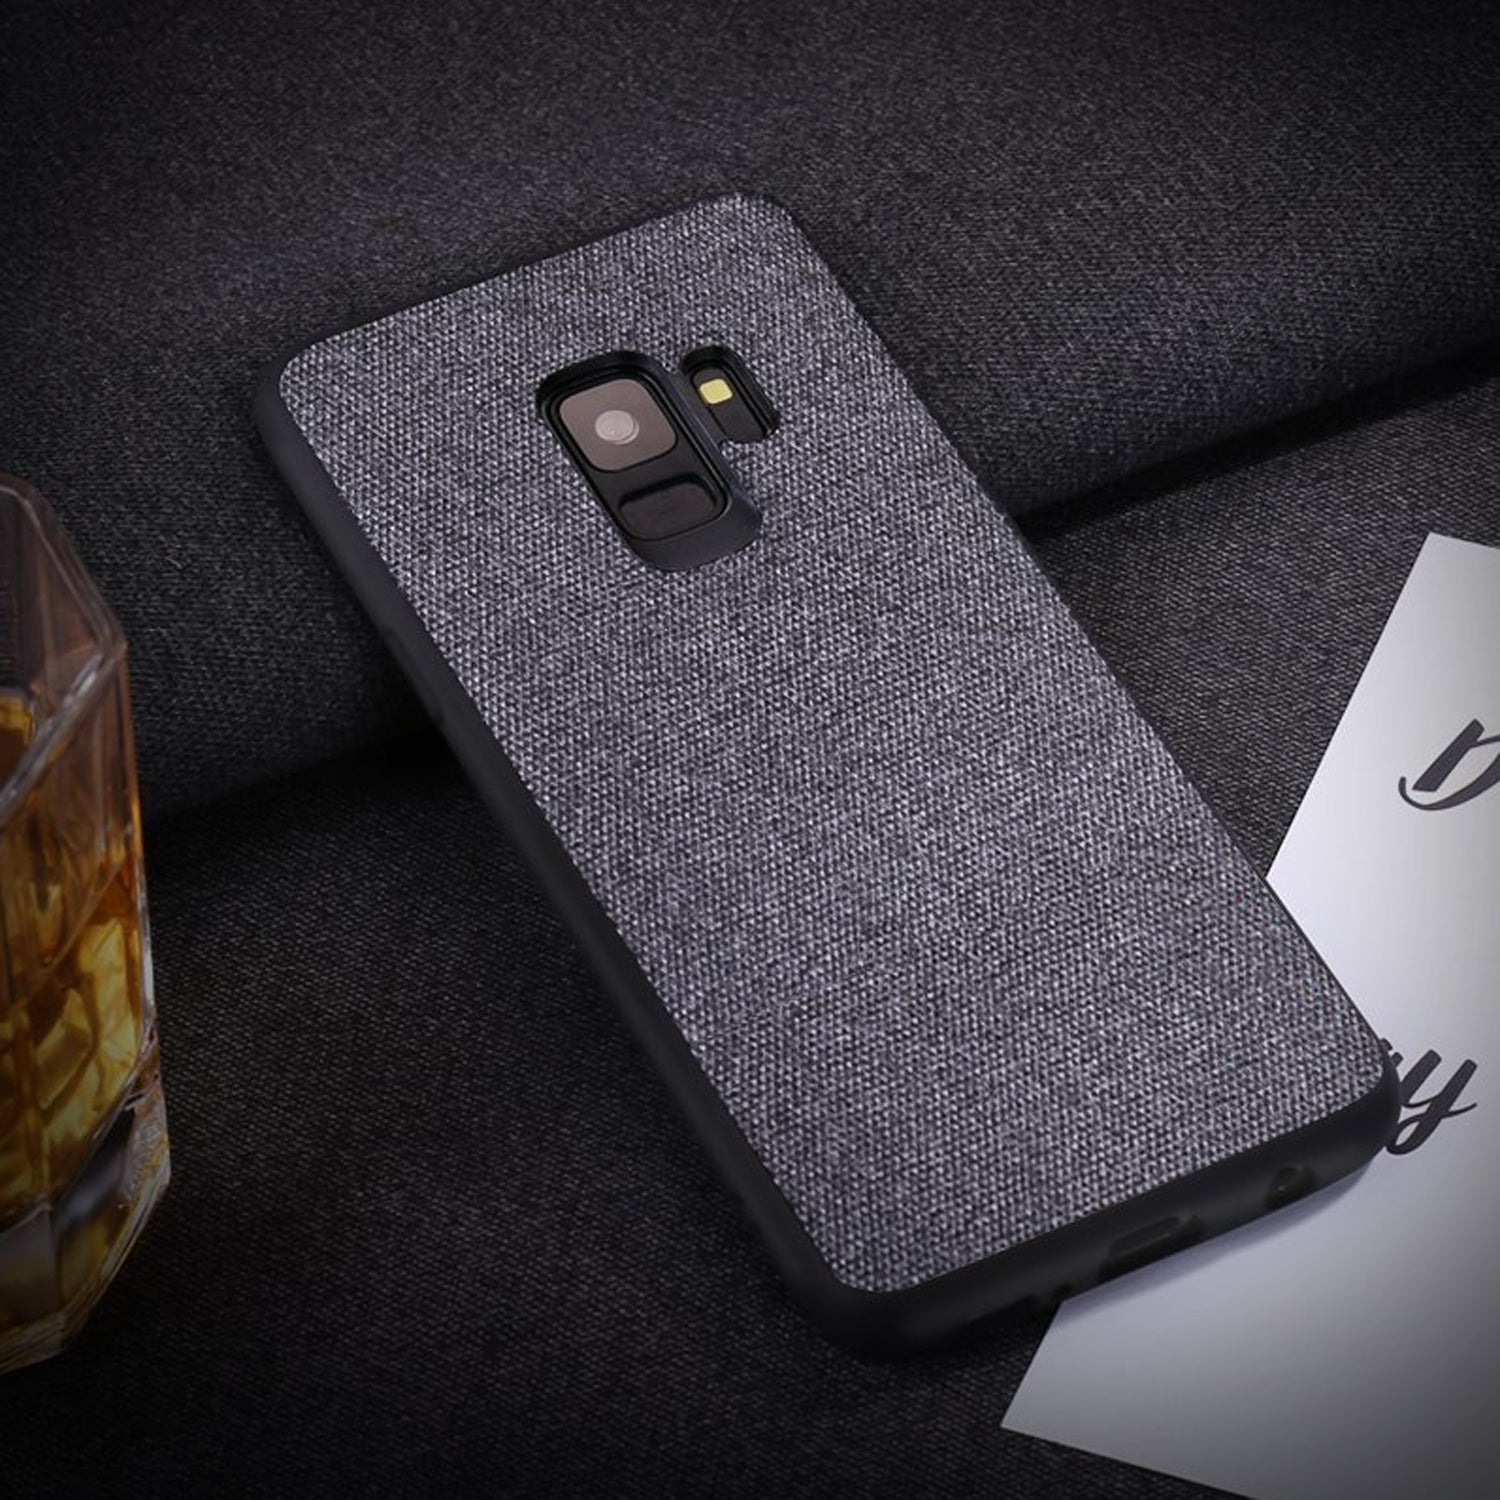 Full Fabric Hybrid Protective Case Cover for Samsung Galaxy S9 - Grey - Mobizang